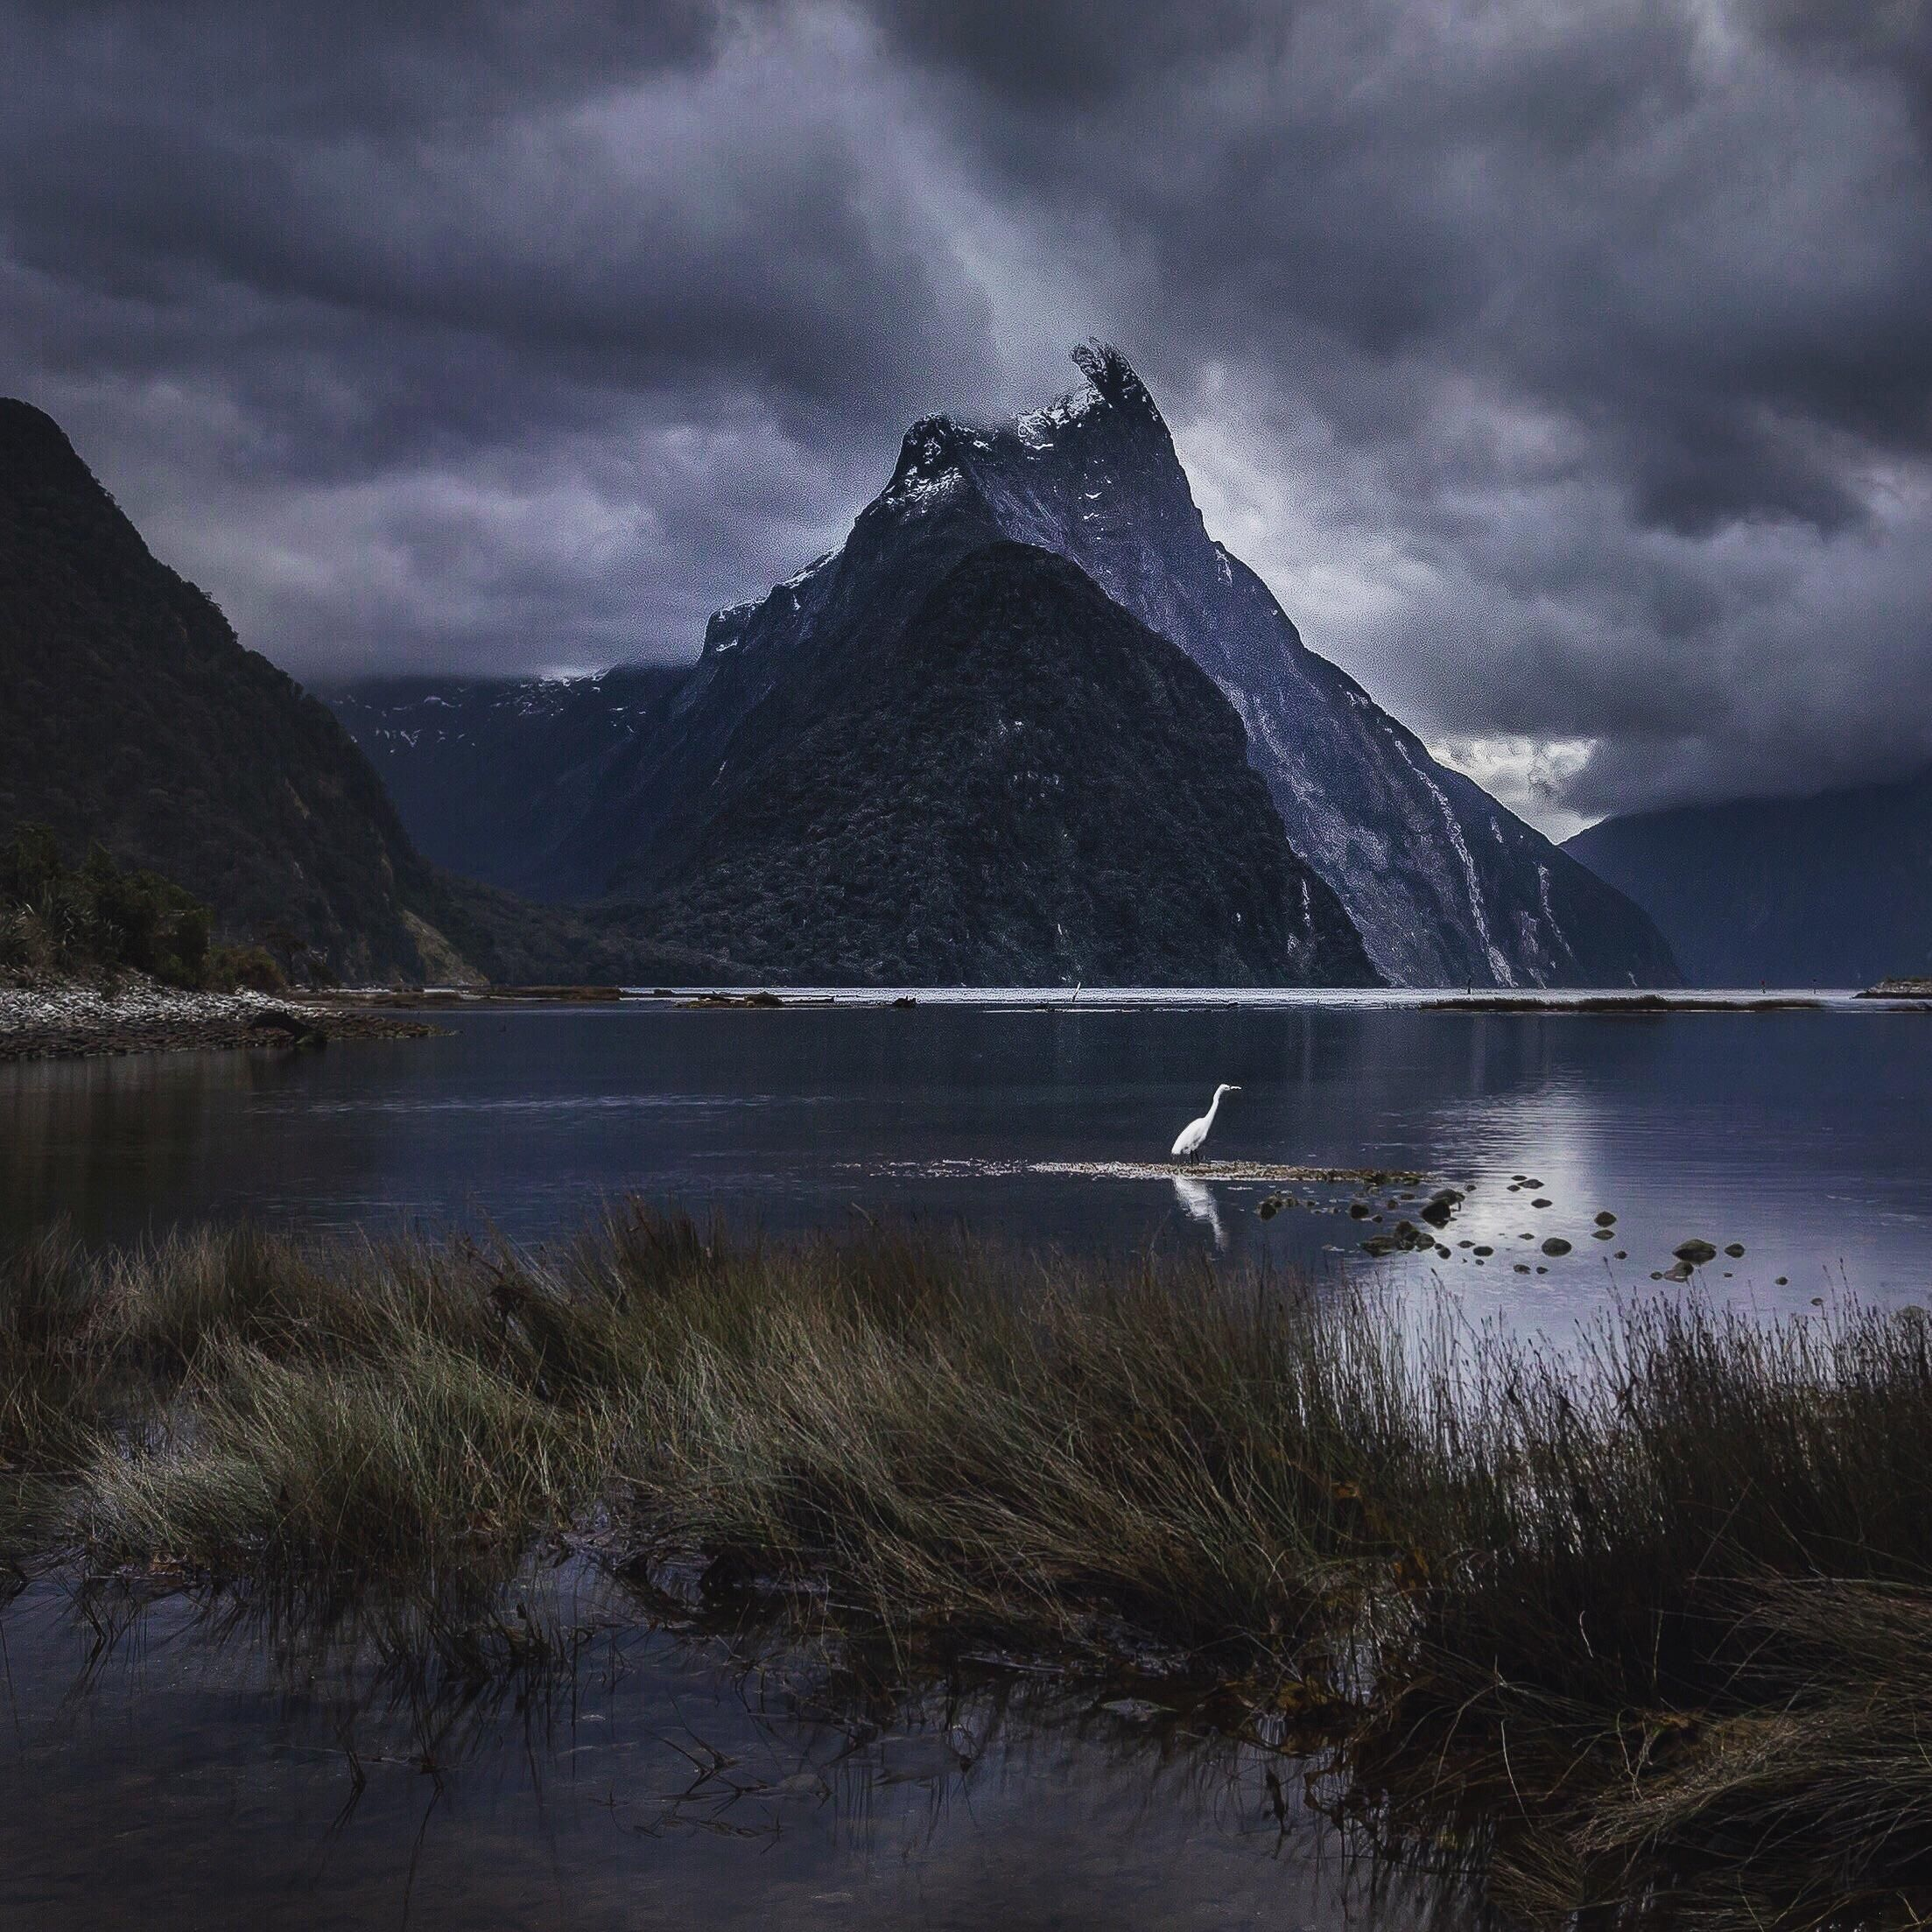 Moody Milford Mornings Milford Sound New Zealand 1300x1300 Oc Mountain Landscape Photography Scenery Photography Landscape Photography